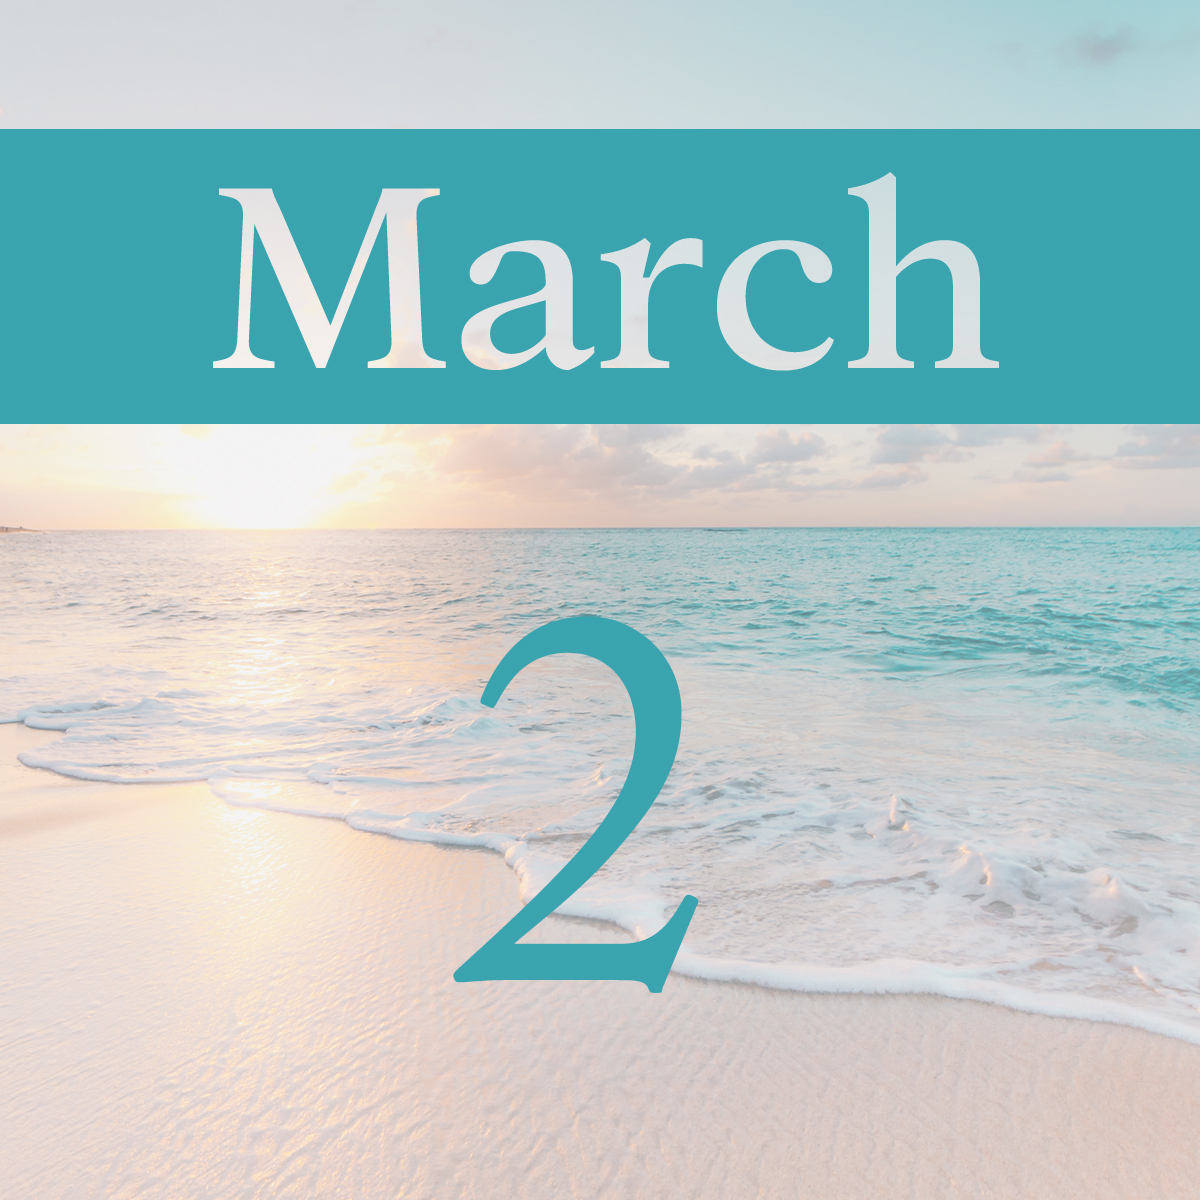 Monday, March 2nd